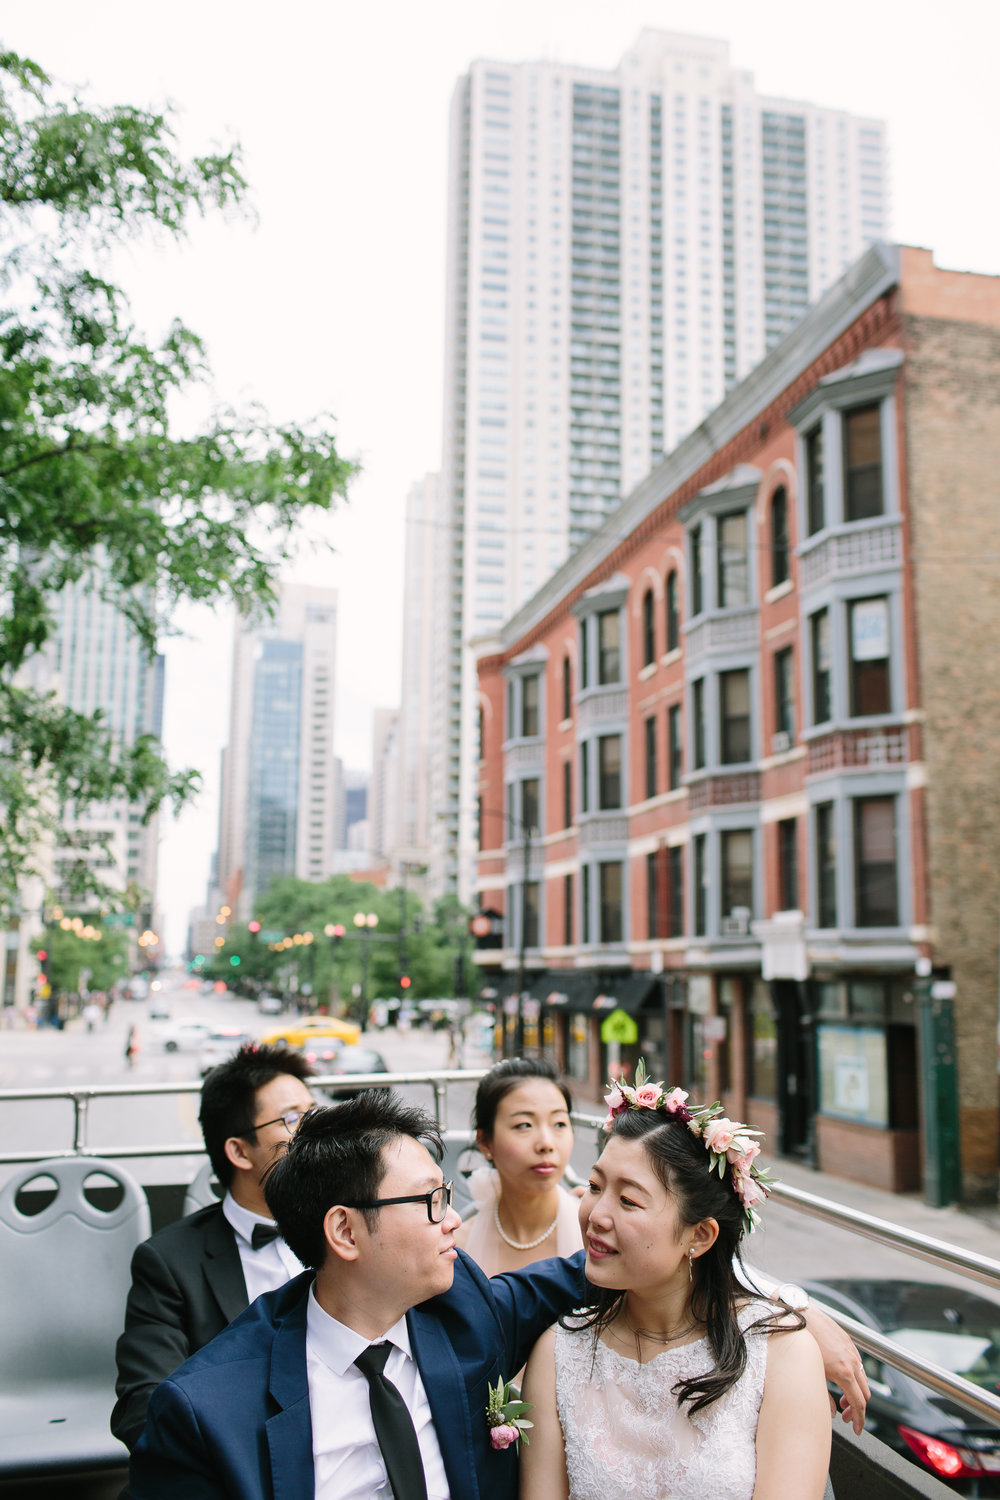 Nicodem Creative-Wang Wedding-Public Hotel Chicago-29.jpg